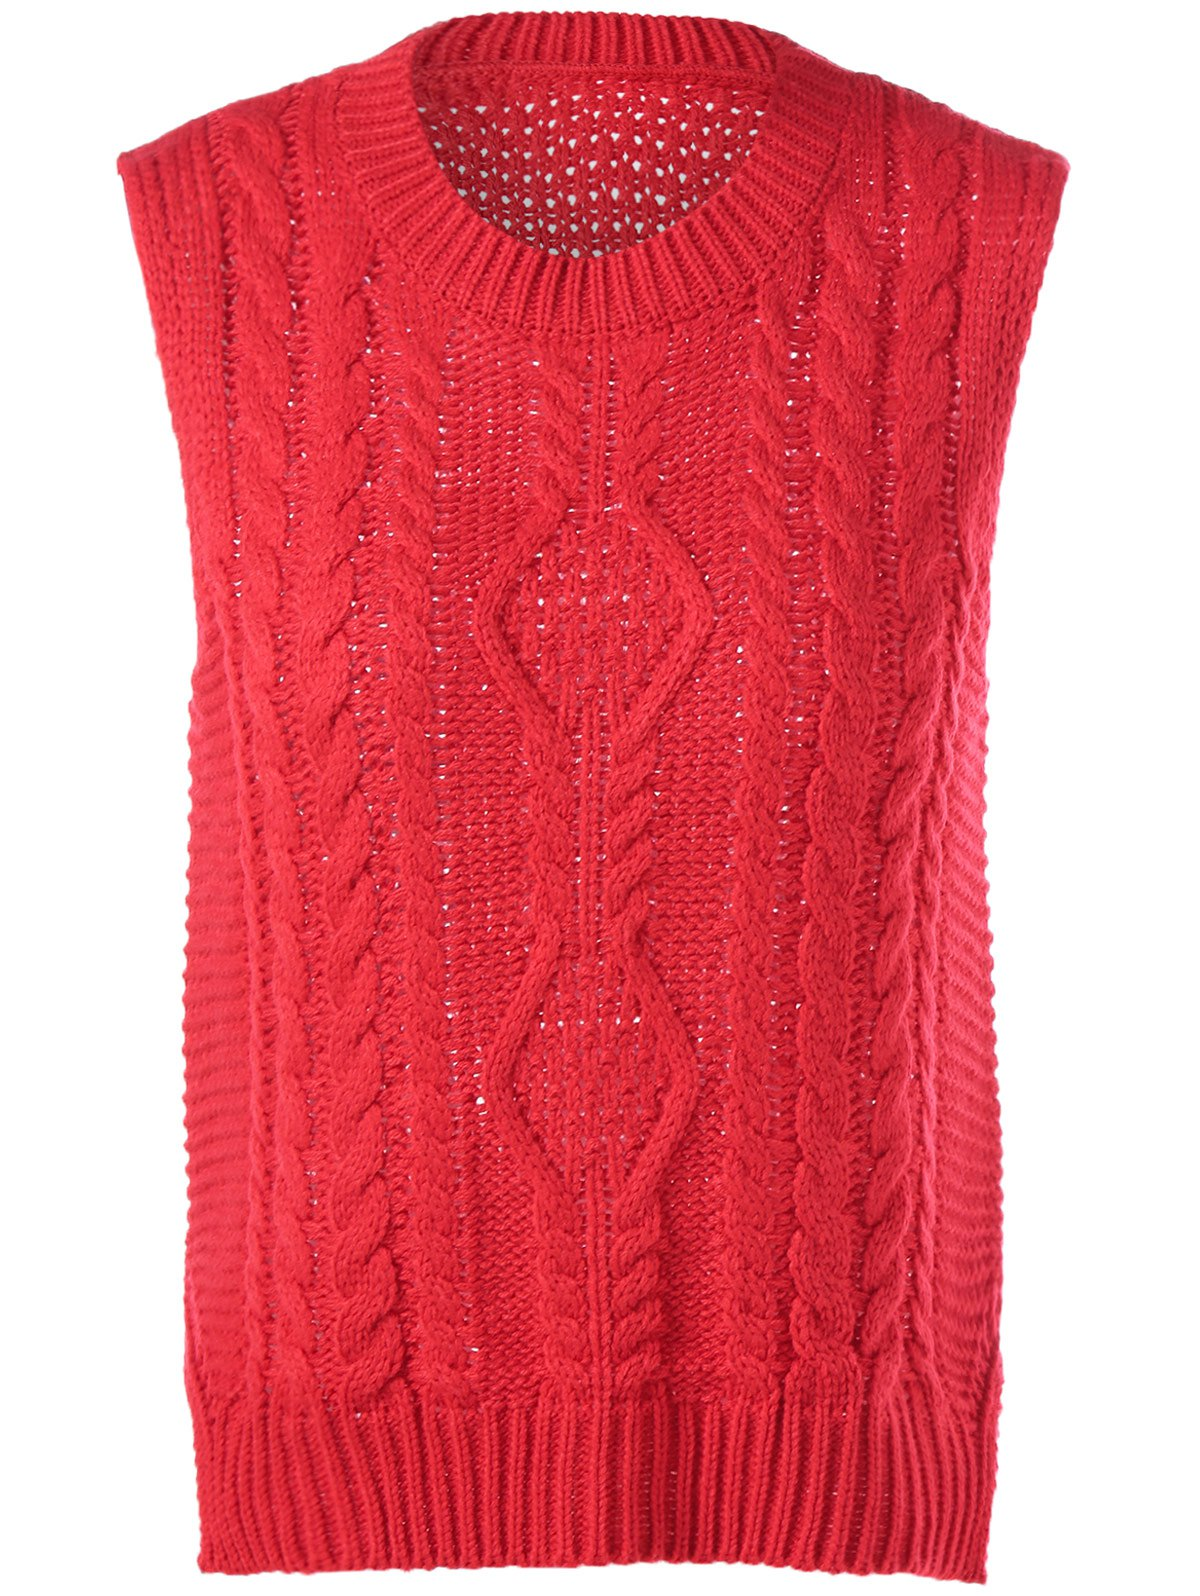 Cable-Knit Sleeveless Textured Knitwear - RED ONE SIZE